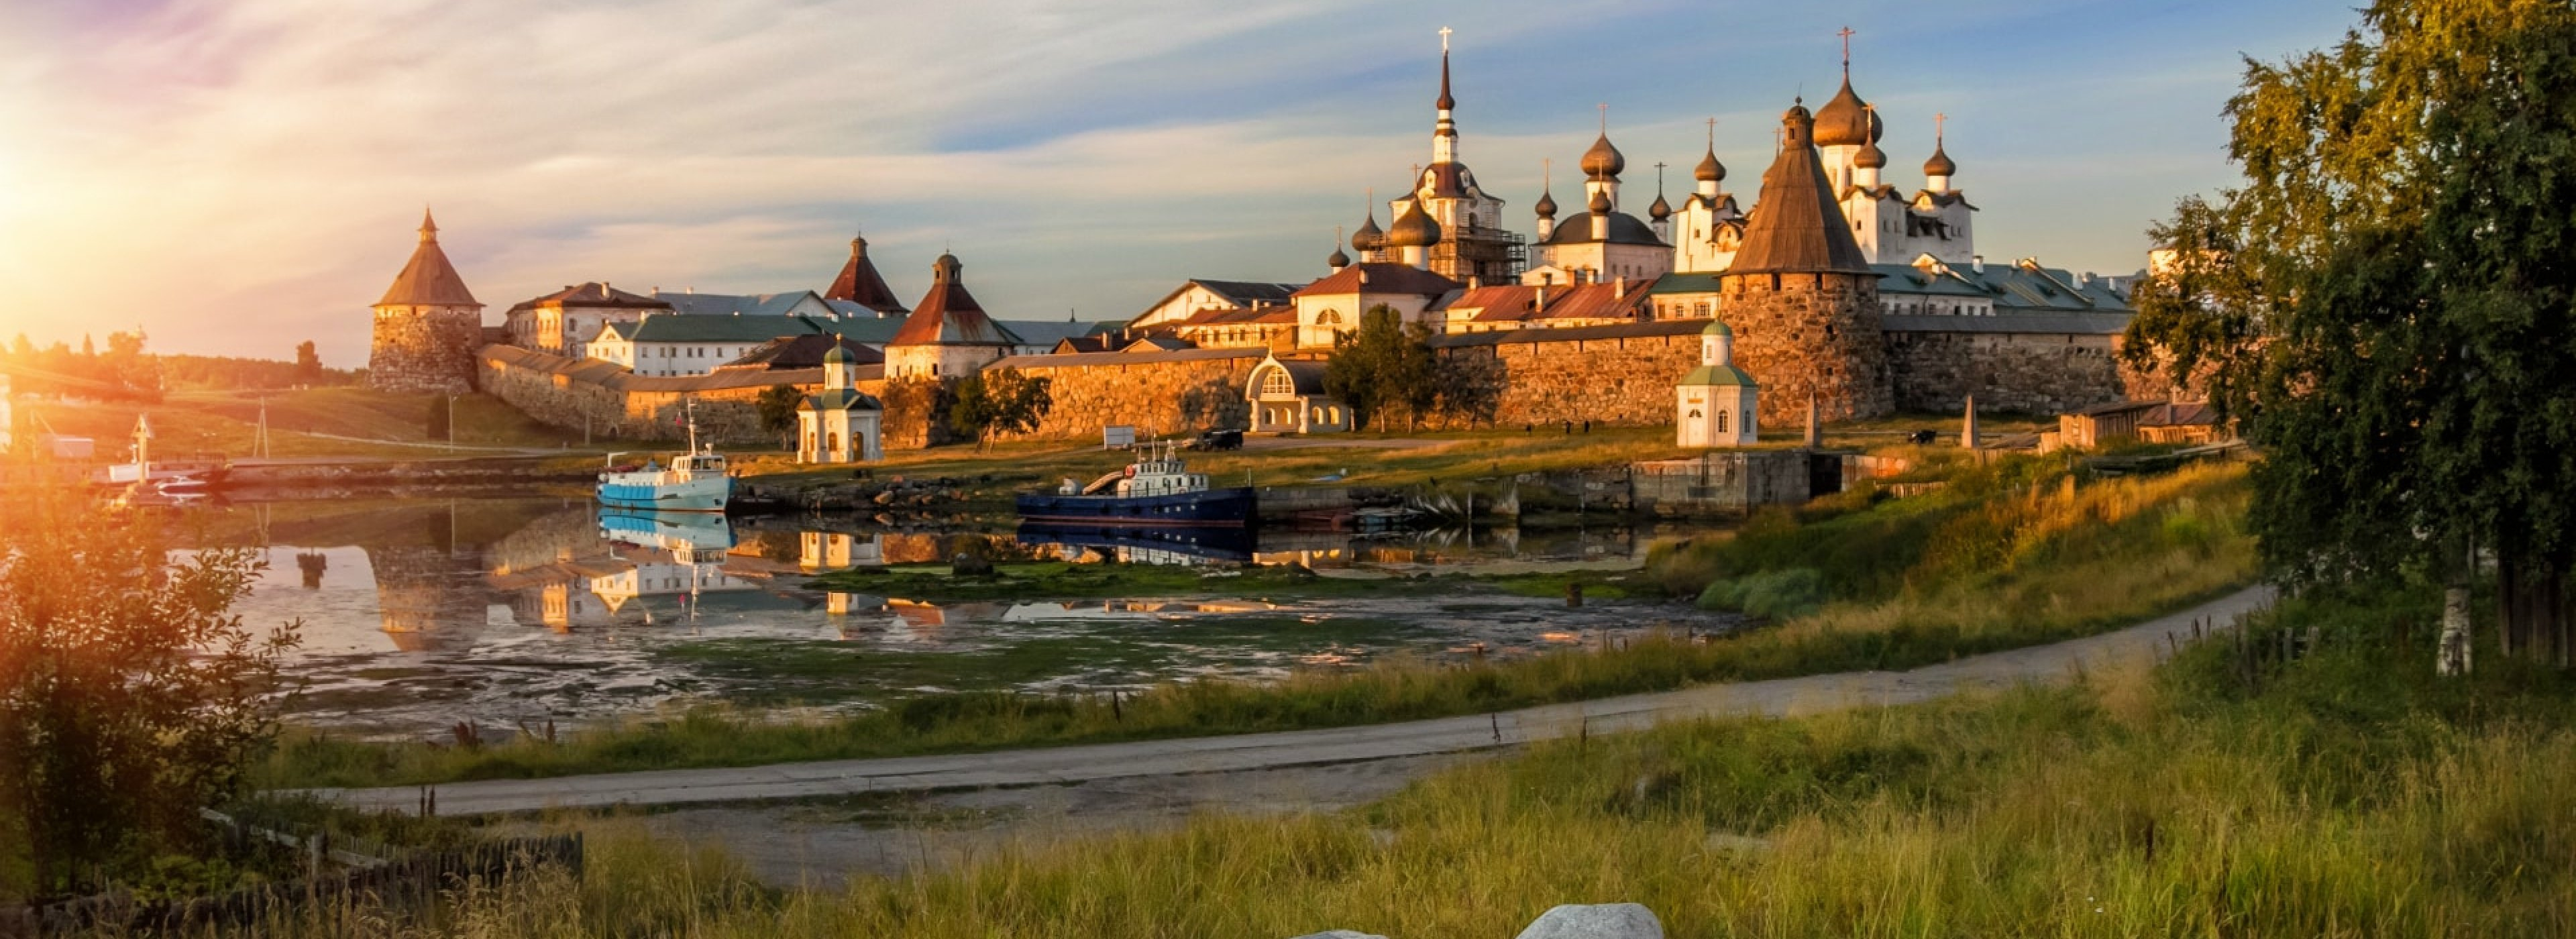 The Solovetsky Islands